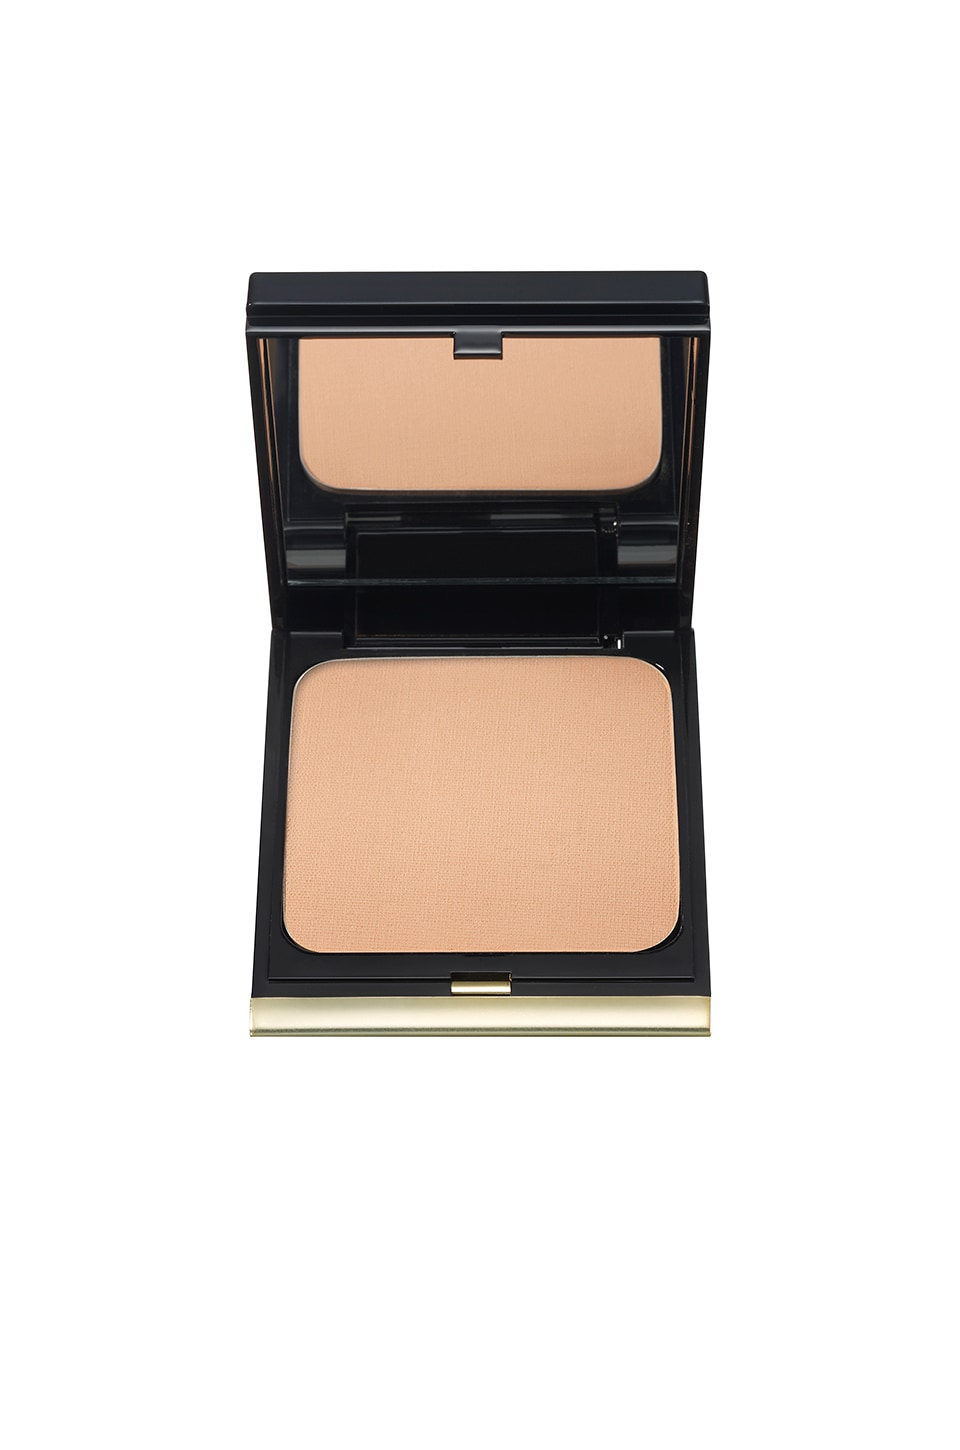 Kevyn Aucoin The Sensual Skin Powder Foundation in Medium 05